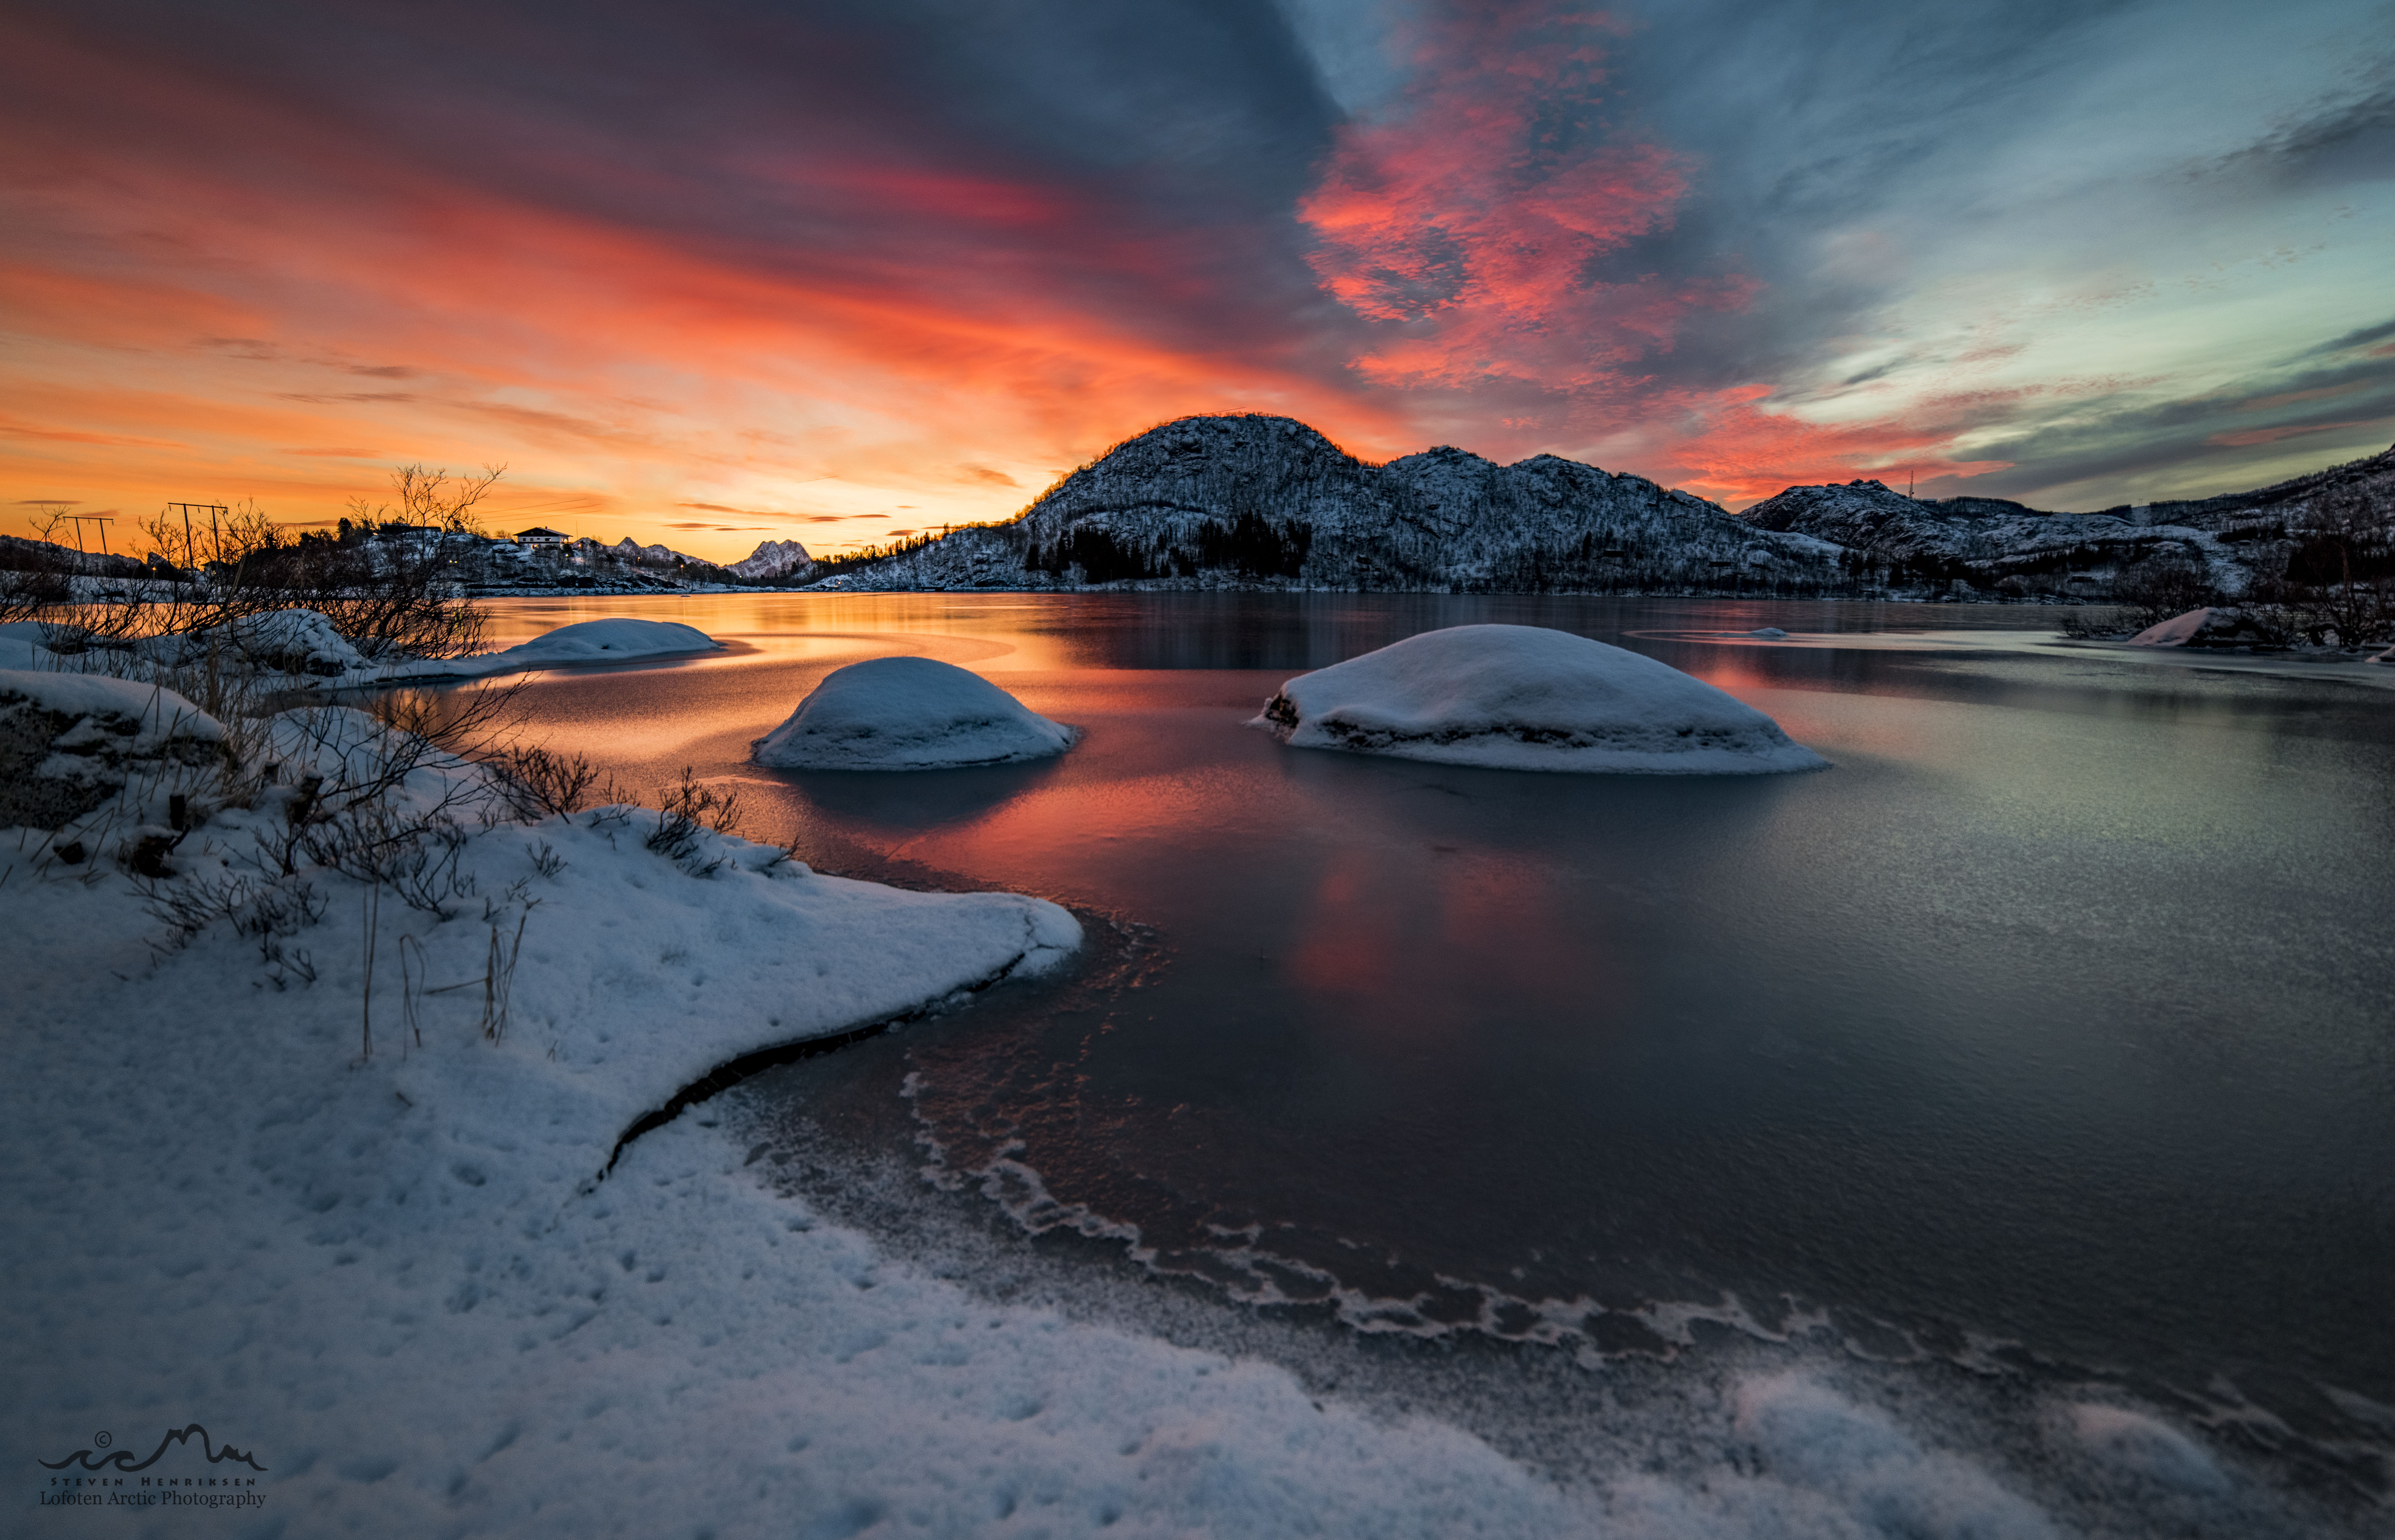 Exploring the Lofoten archipelago during polar night